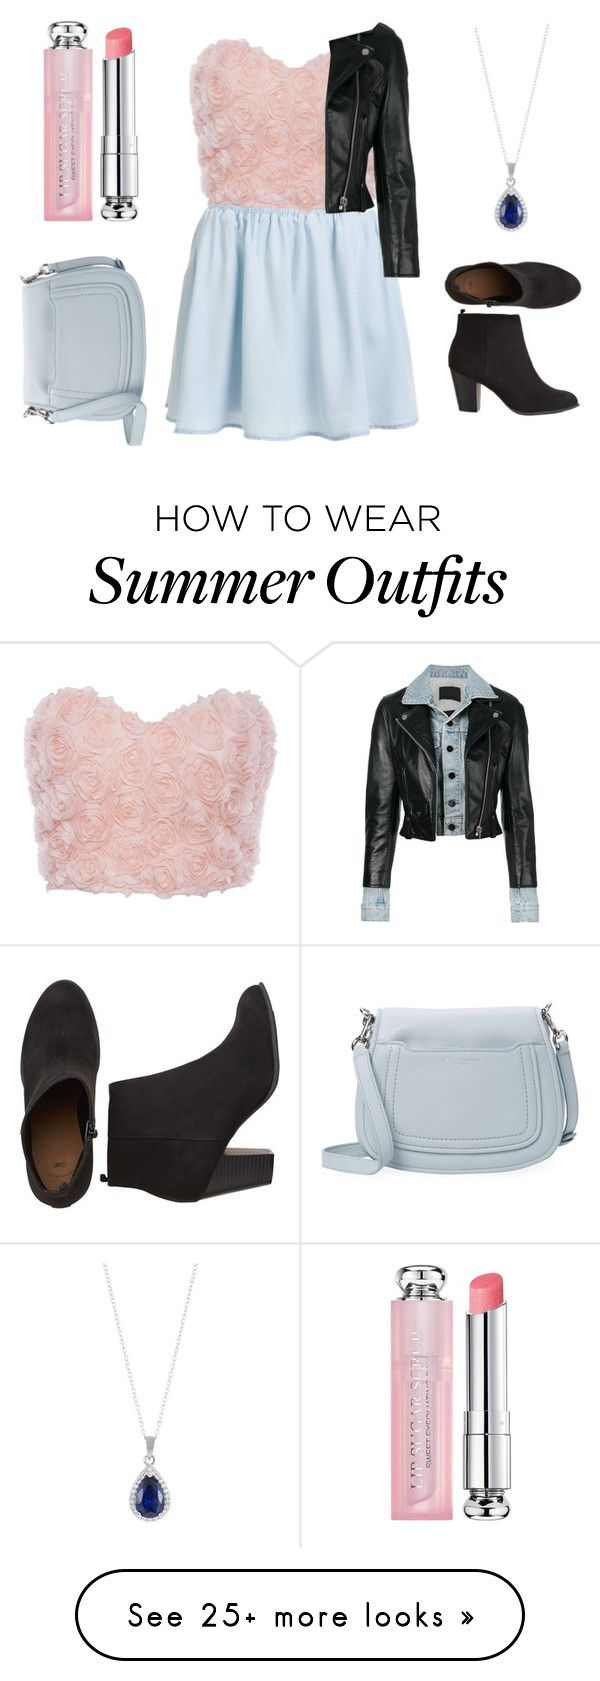 """summer outfit 22"" by starojeda on Polyvore featuring Christian Dior, Lord & Taylor, Alexander Wang and Marc Jacobs"